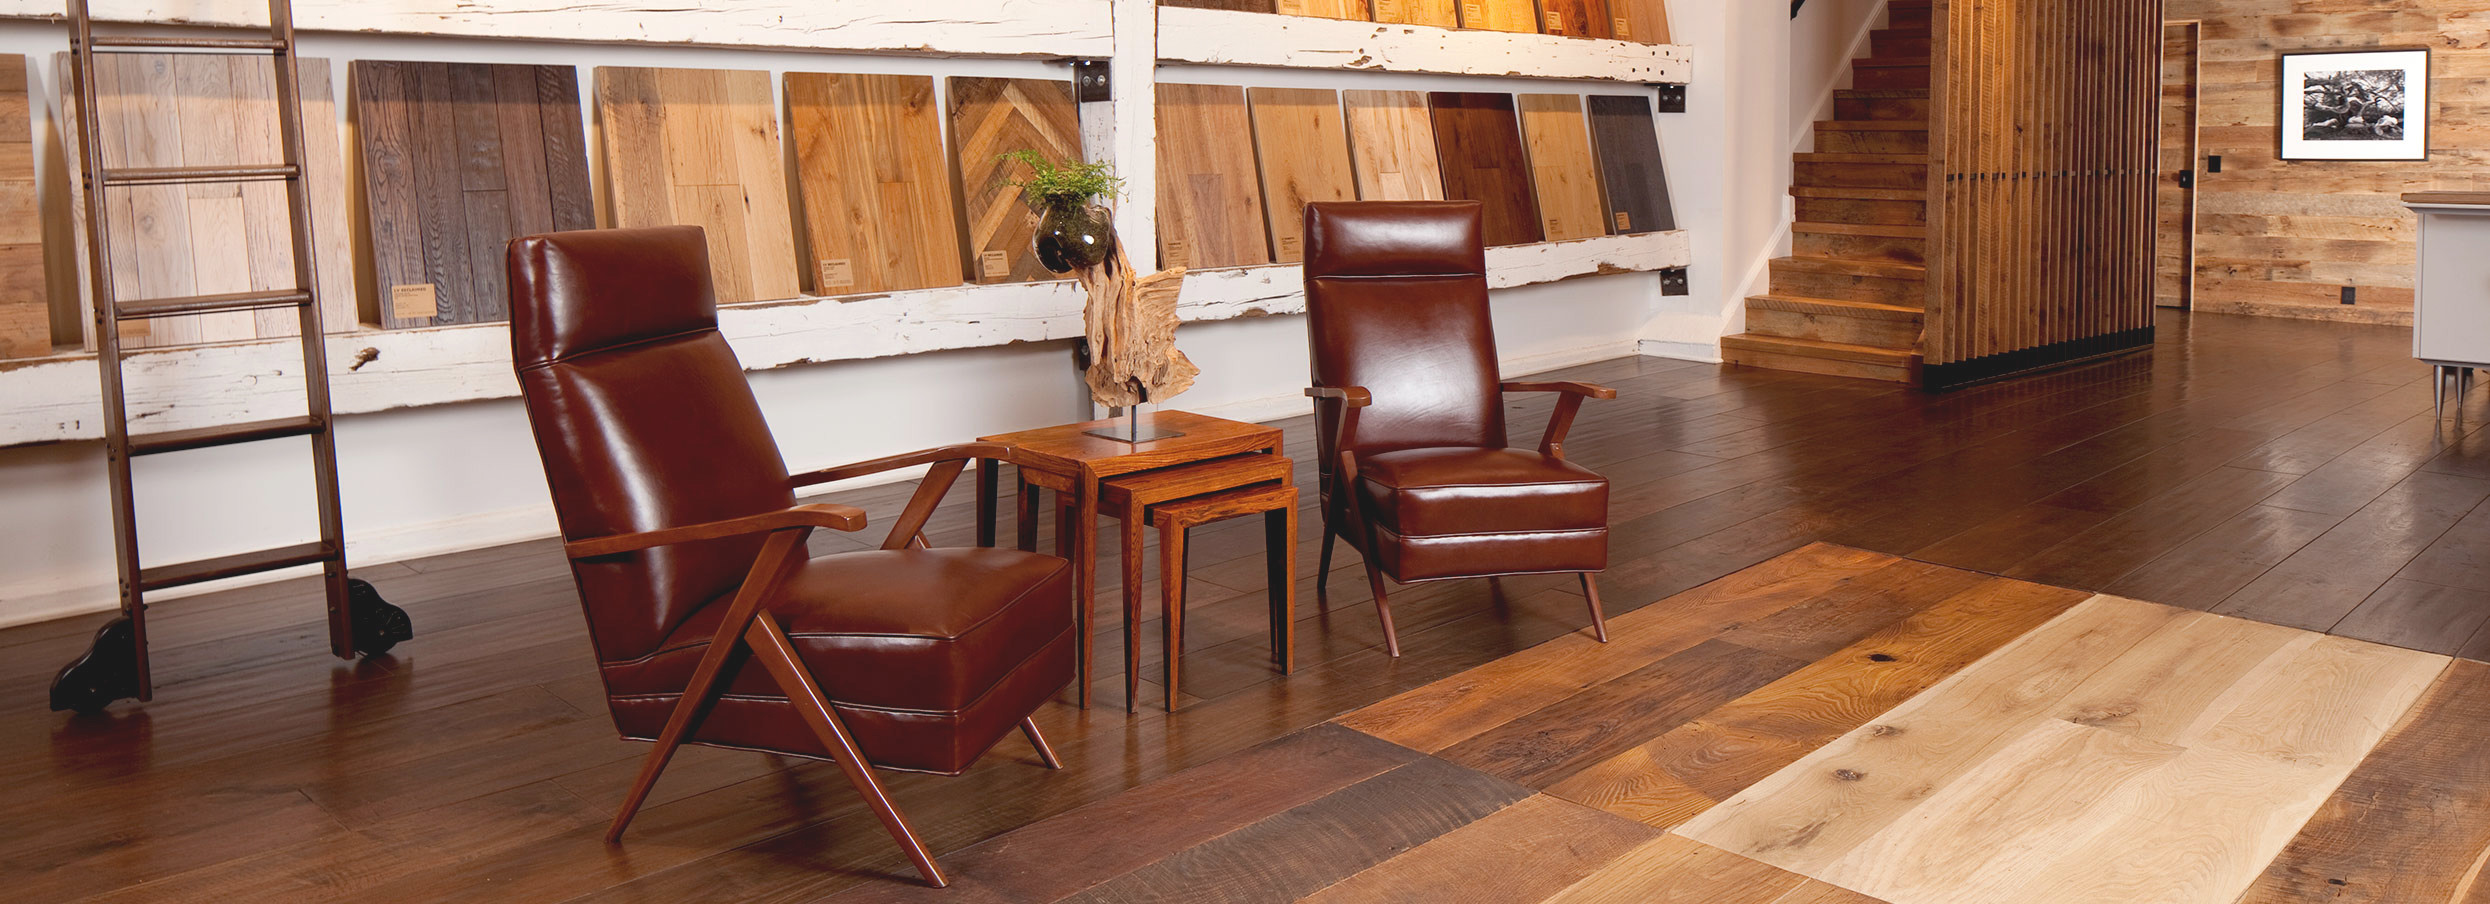 What Is Now LV Wood Was Founded In 1985 In Buffalo, NY By Master Antique U0026  Millwork Refinisher, Jim Caroll. Mr. Caroll Built A Thriving Business  Restoring ...